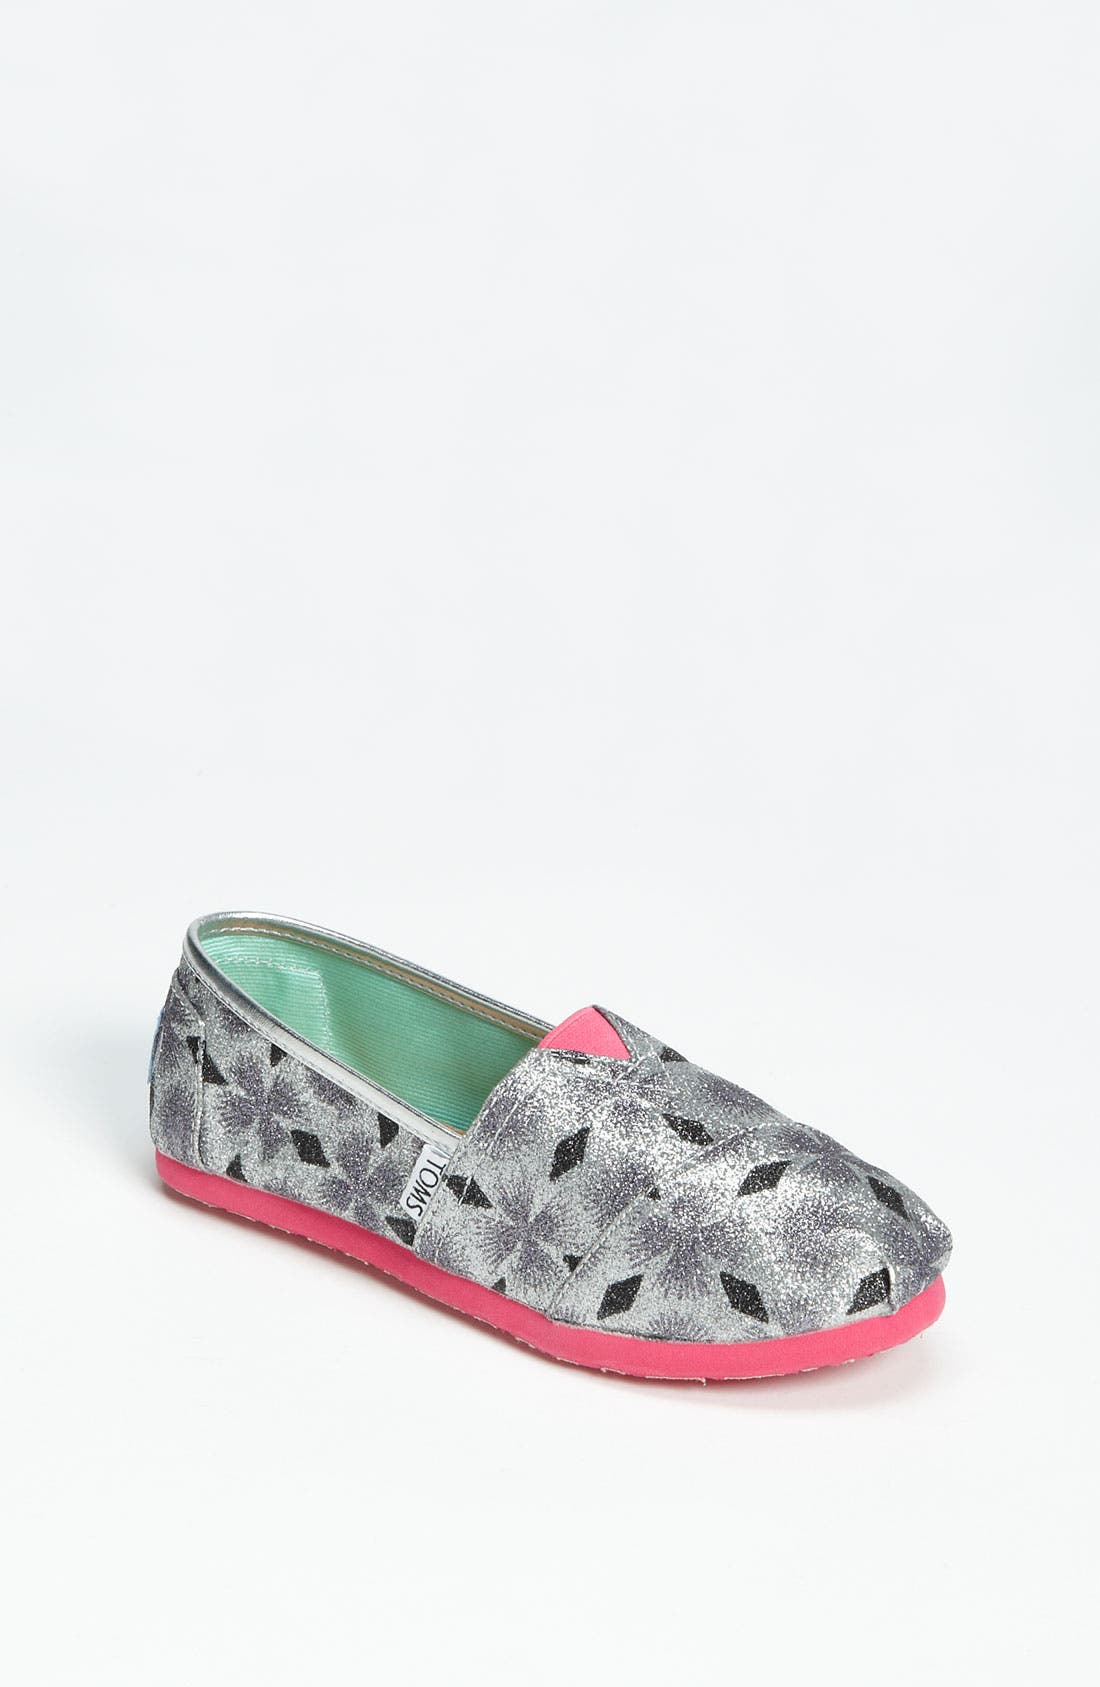 Main Image - TOMS 'Classic Youth - Starburst' Slip-On (Little Kid & Big Kid) (Nordstrom Exclusive)